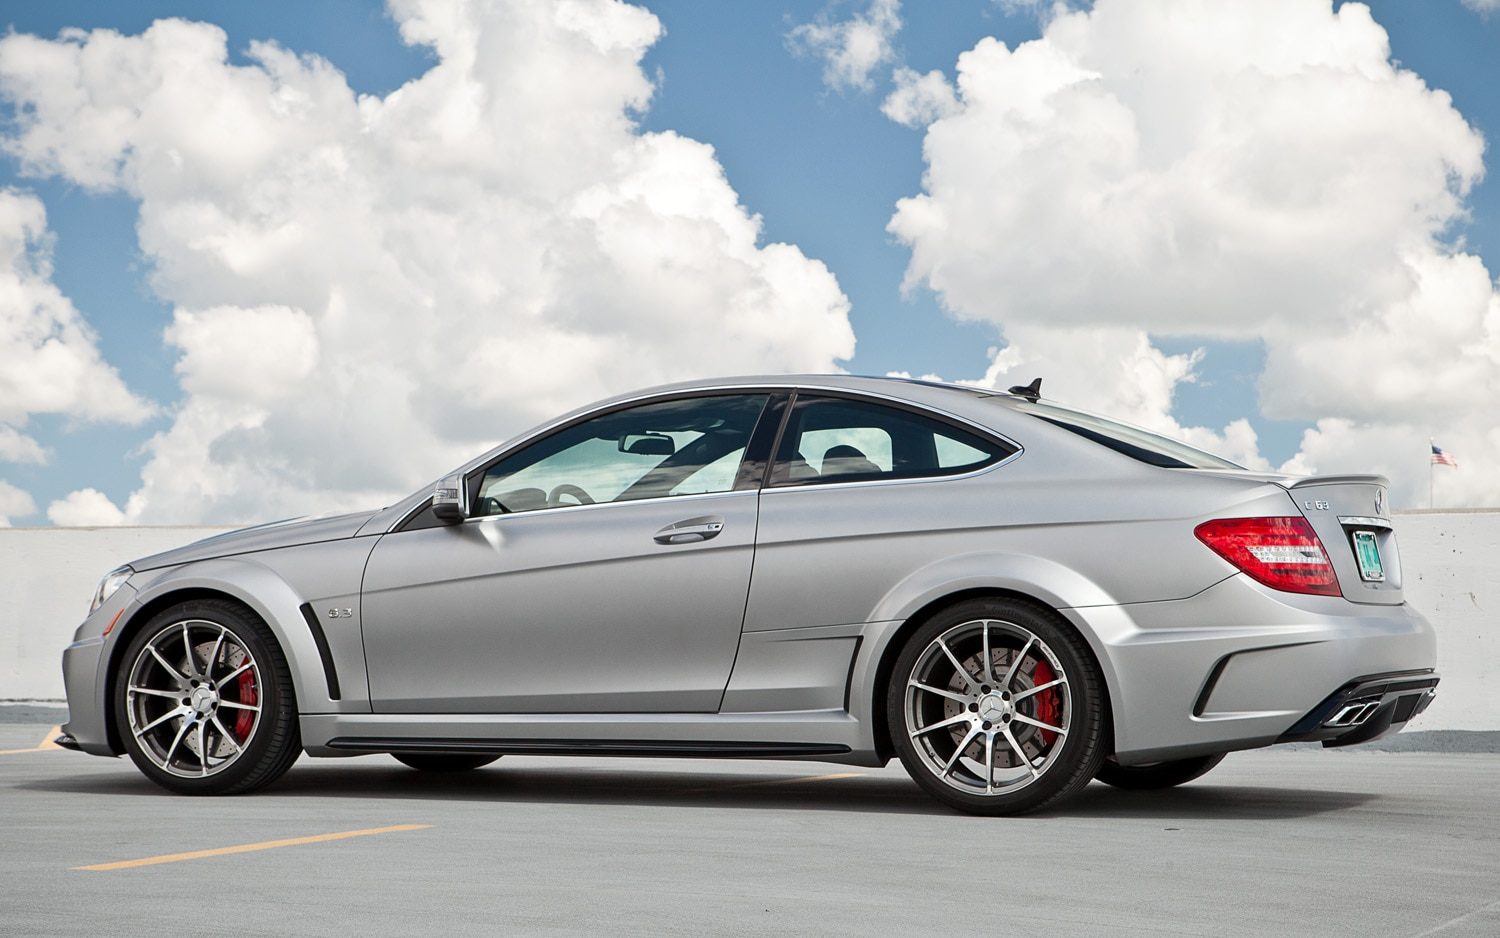 C63 Amg Black Series Interior Tag For Benz C63 Tag For